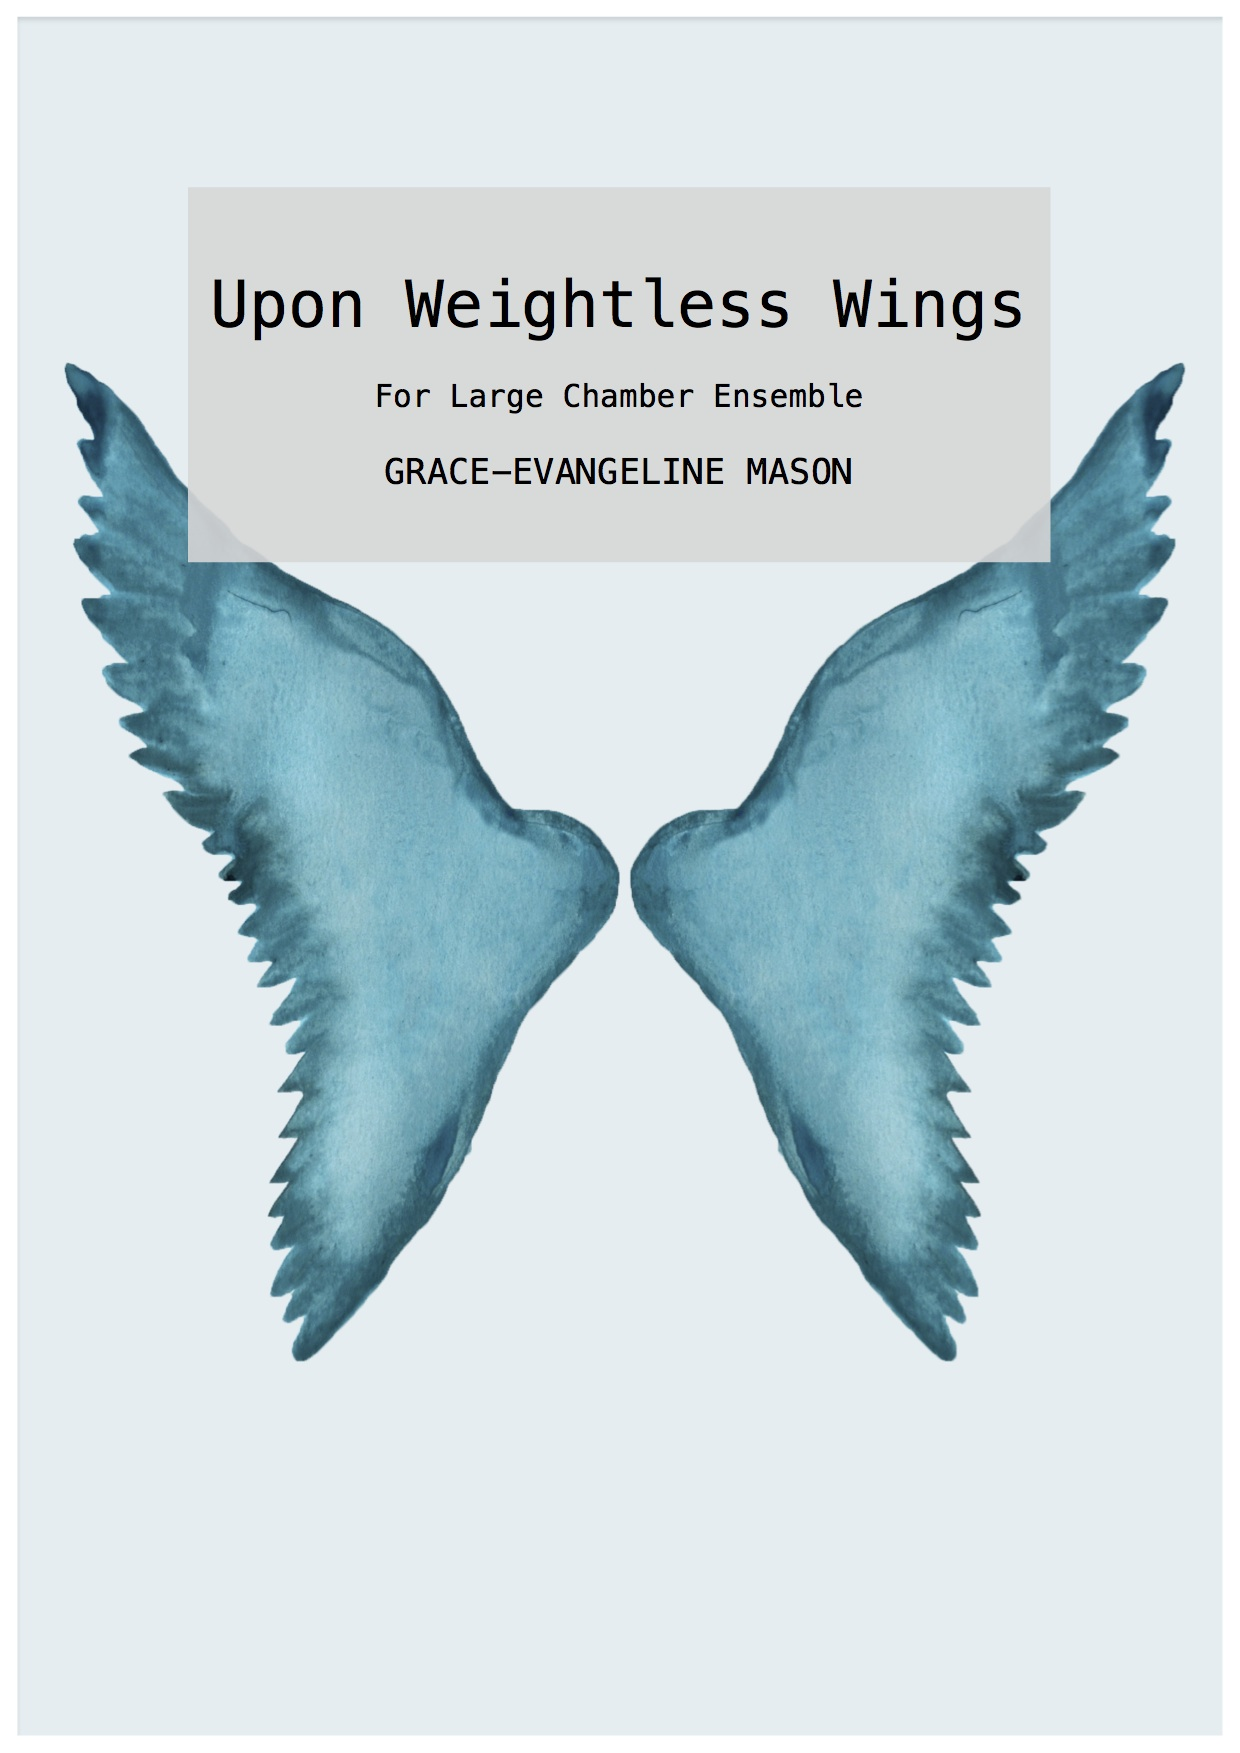 "Upon Weightless Wings (2018) - for large chamber ensemble (1.1.1.1/1.1.1.0/pf/perc/1.1.1.1.1)Approx. Duration: 11'30""Written for the Royal Liverpool Philharmonic Orchestra's new music group, Ensemble 10/10, for their 21st birthday concert on 10th October 2018I - 'In Sheep's Clothing'II - 'and, between light and darkness'III - 'To Breathe Now''Upon Weightless Wings (2018) for large chamber ensemble is written in three movements, each taking inspiration from separate contemporary artworks. The first, 'In Sheep's Clothing', is a slow, dark movement taking its title inspiration from the pine sculpture of the same name by Martin Puryear (1996). The second movement 'and, between light and darkness', is based upon the oil painting 'Y una entre luz y penumbra' (2006) by Manuel Huertas Torrejon, in which two birds perch facing each other on a ledge, one in shadow and the other illuminated by daylight. The final movement, 'To Breathe Now', is inspired by the installation 'To Breathe – A Mirror Woman' (2006) by multidisciplinary artist Kimsooja, in which she transformed a palace into a glorious display of reflected rainbows. Across the three movements the piece explores themes of liberation; transitioning from darkness to light, restrain to freedom. It is a work written to celebrate new beginnings, to have weightless wings.' ©G.E.M.2018©Cover Image: 'Wings' Painting by Grace-Evangeline Mason 2018"